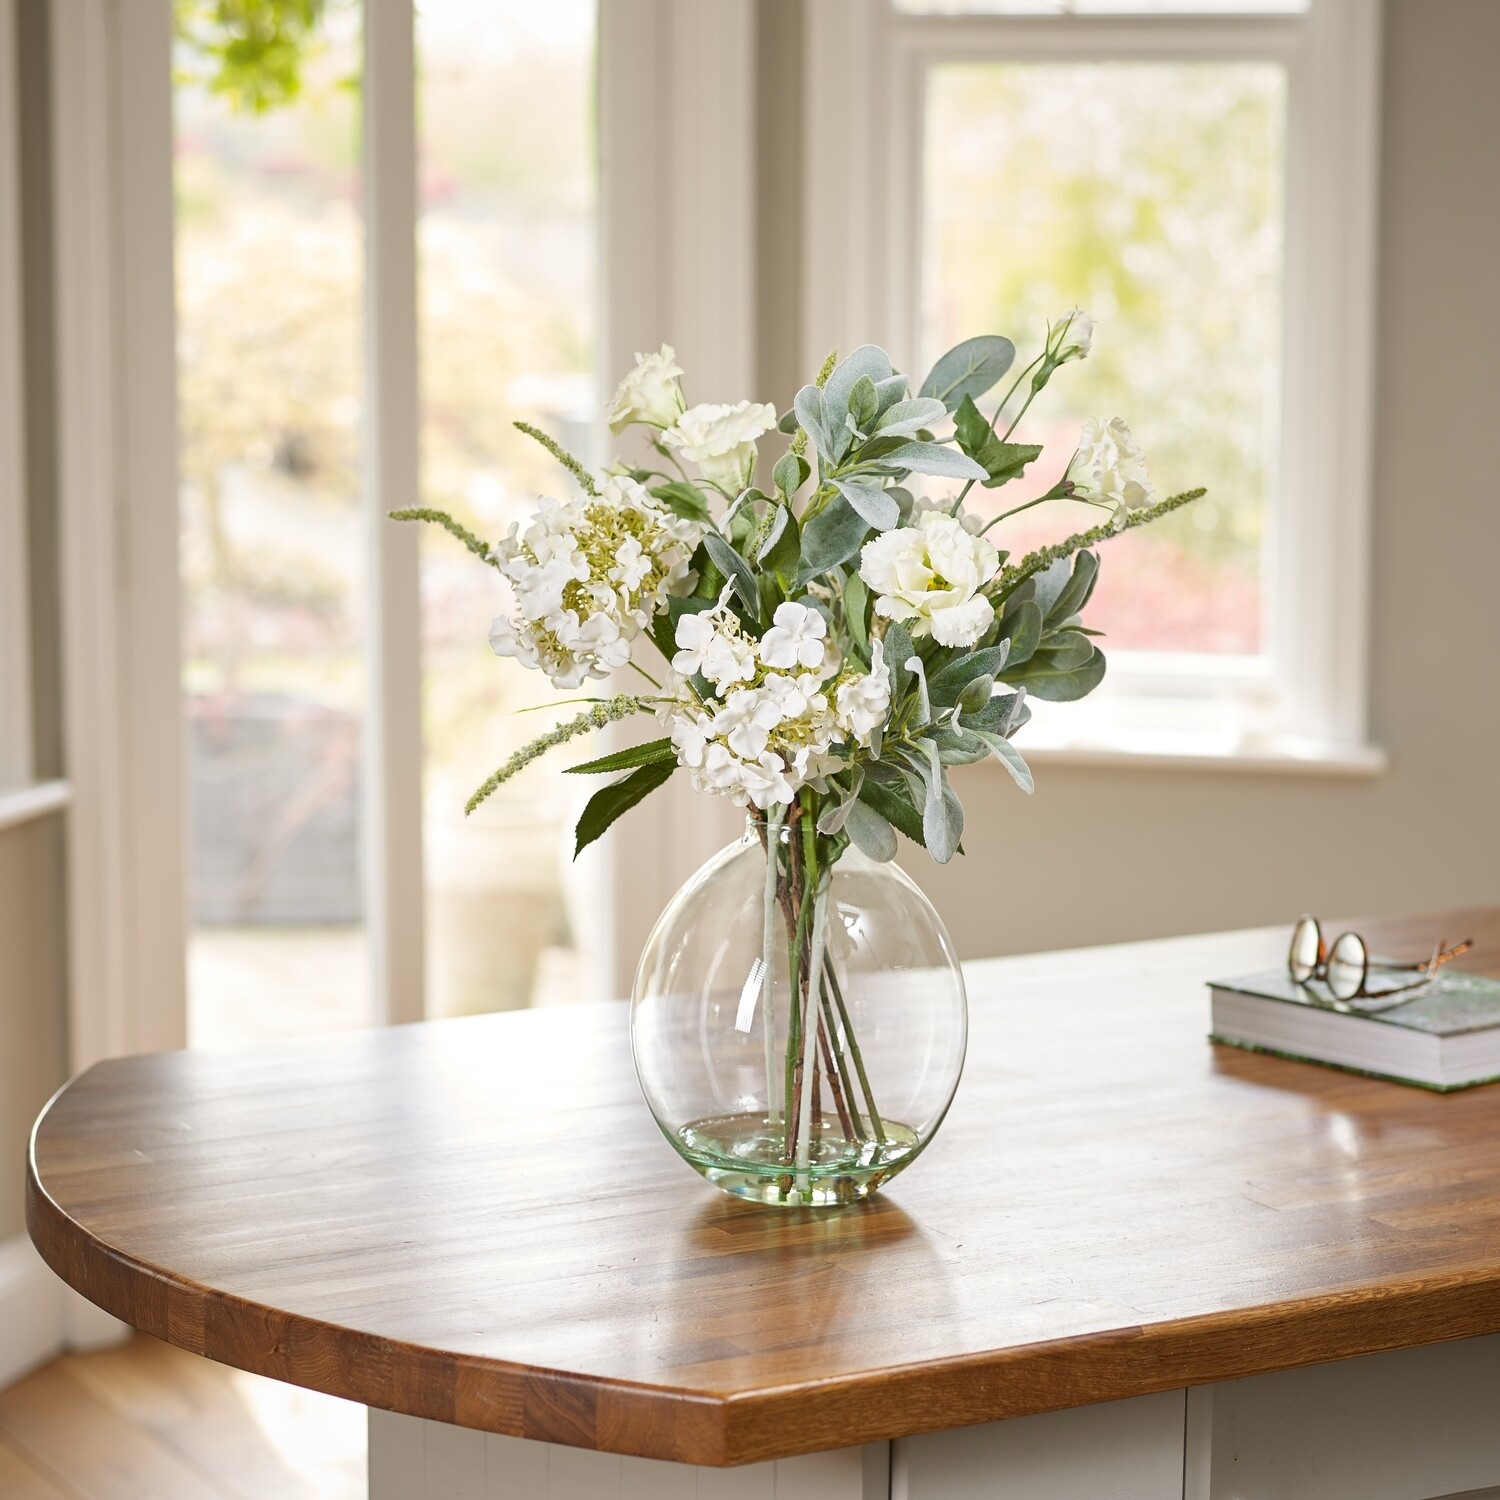 Hydrangea, Lisianthus and Foliage in a Grand Oval Vase